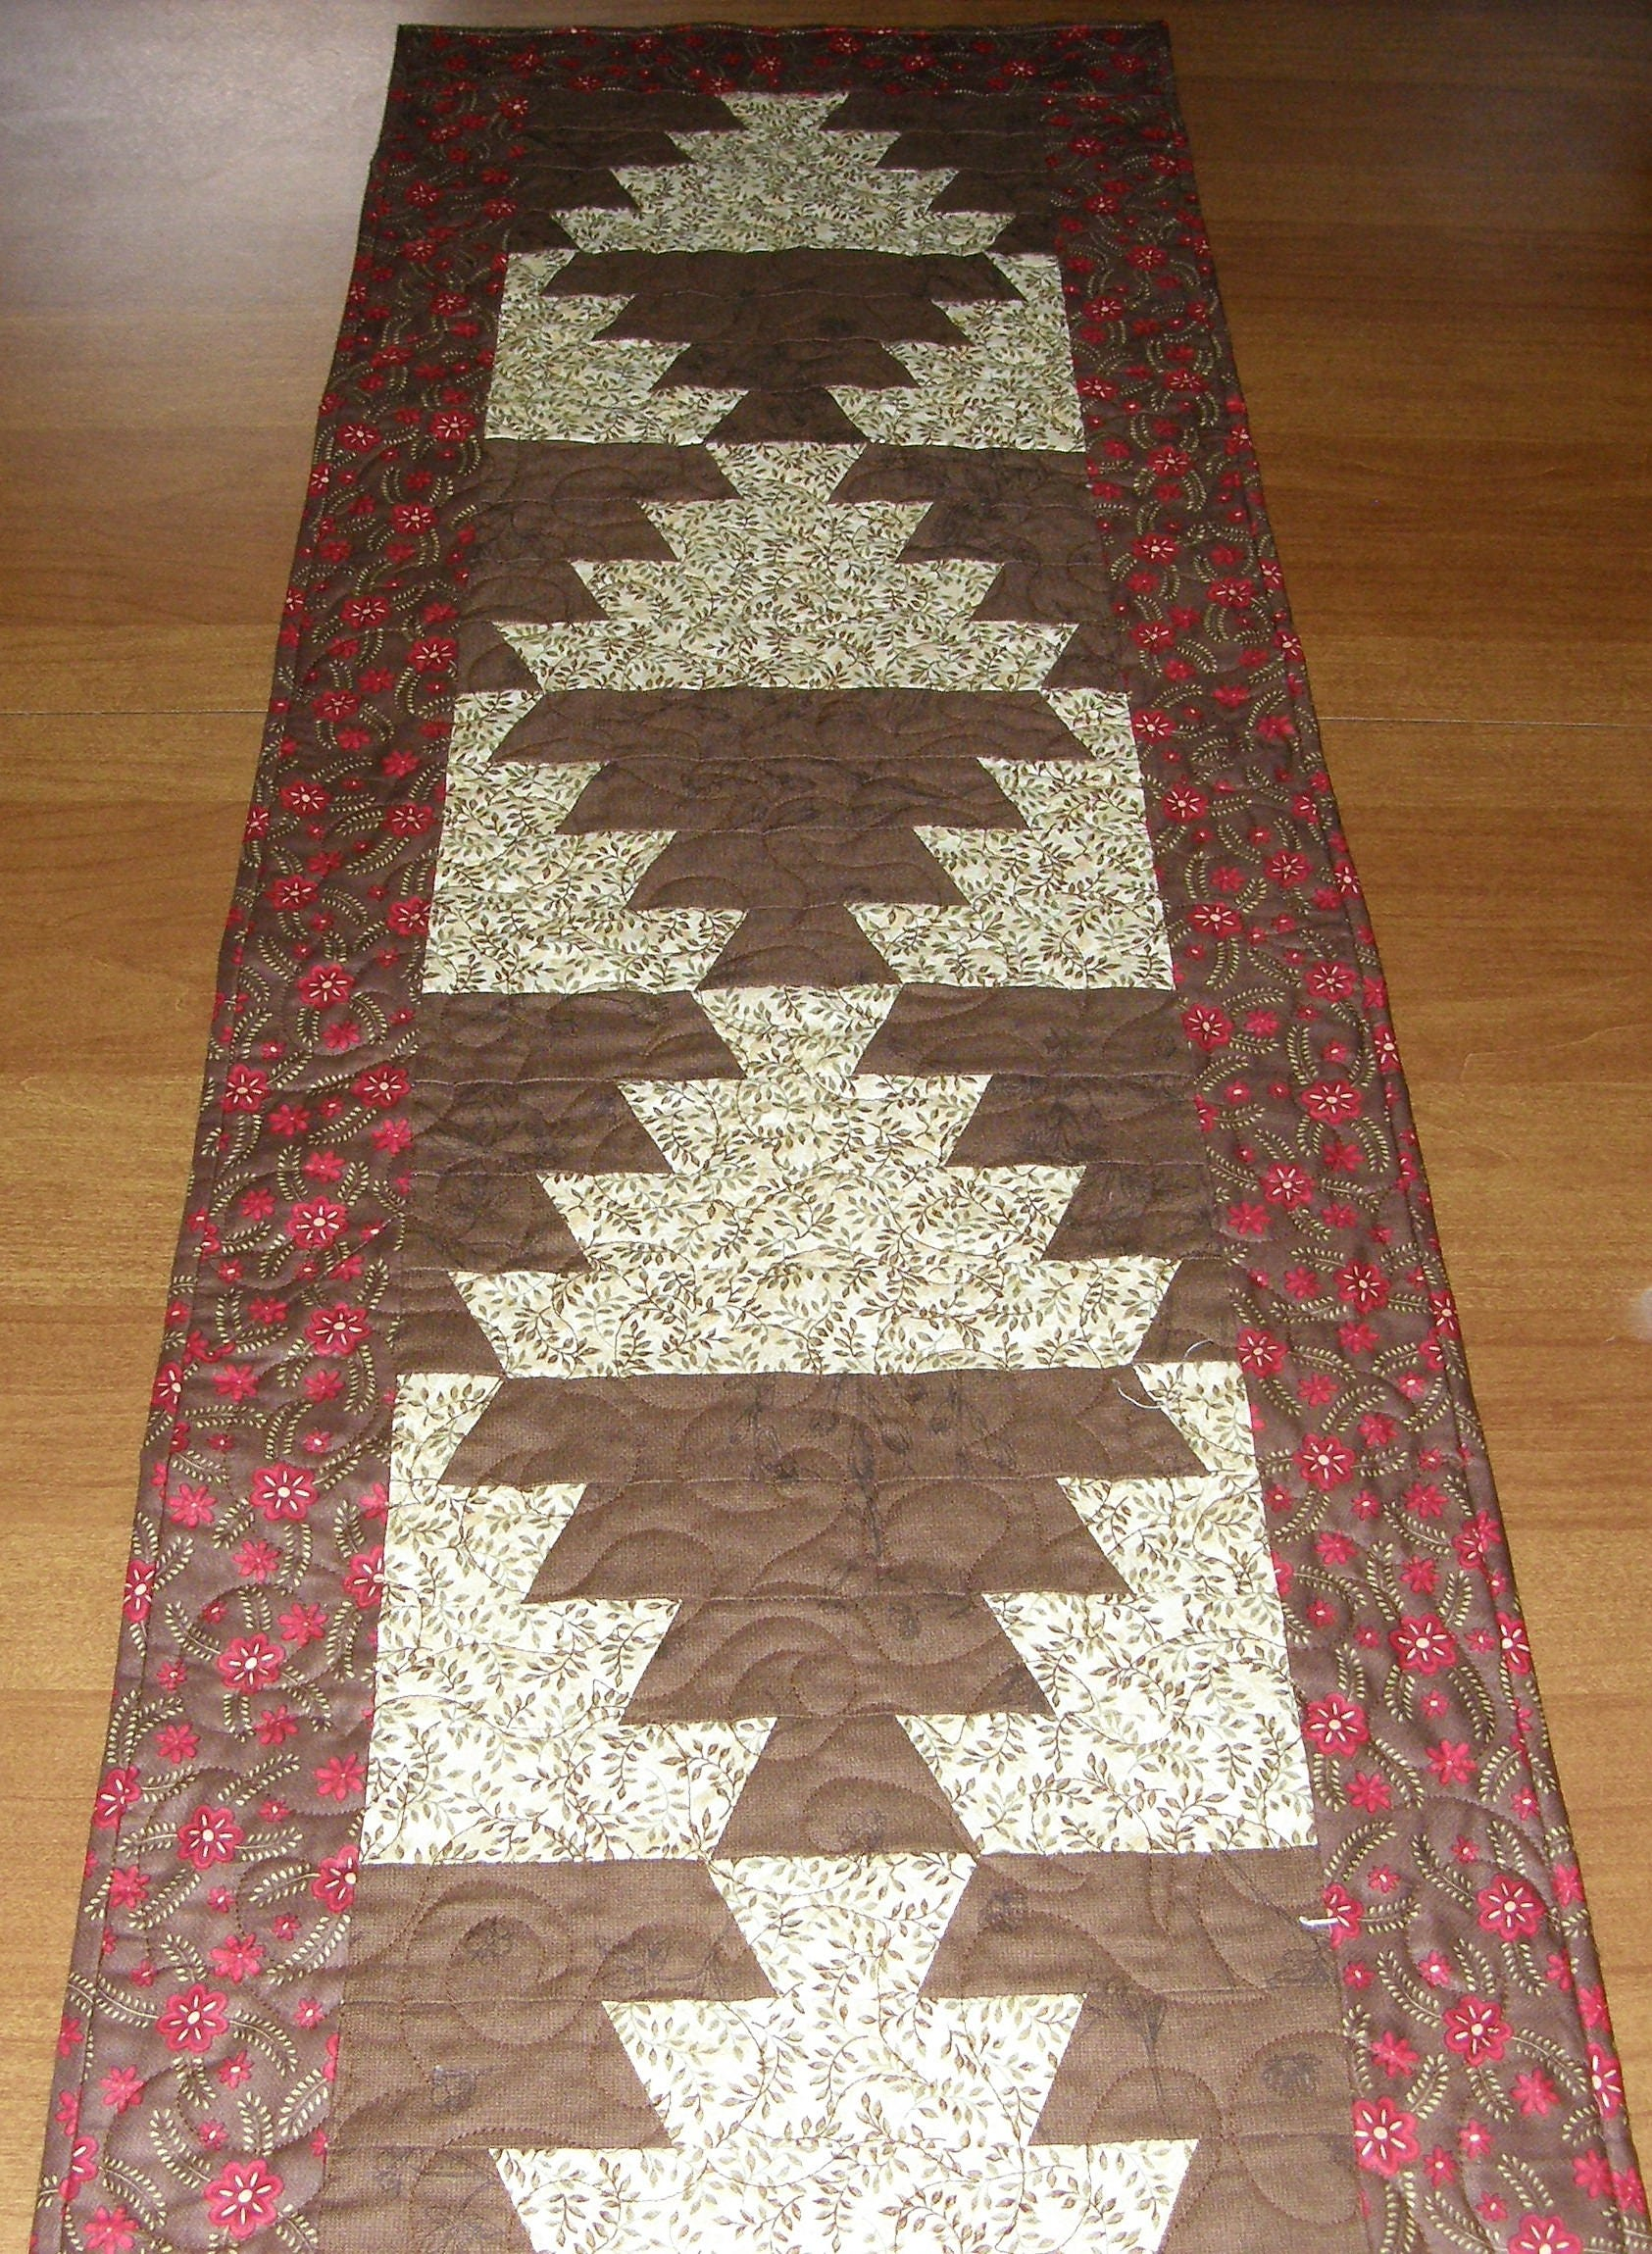 quilted table runner table runner quilt red brown green. Black Bedroom Furniture Sets. Home Design Ideas